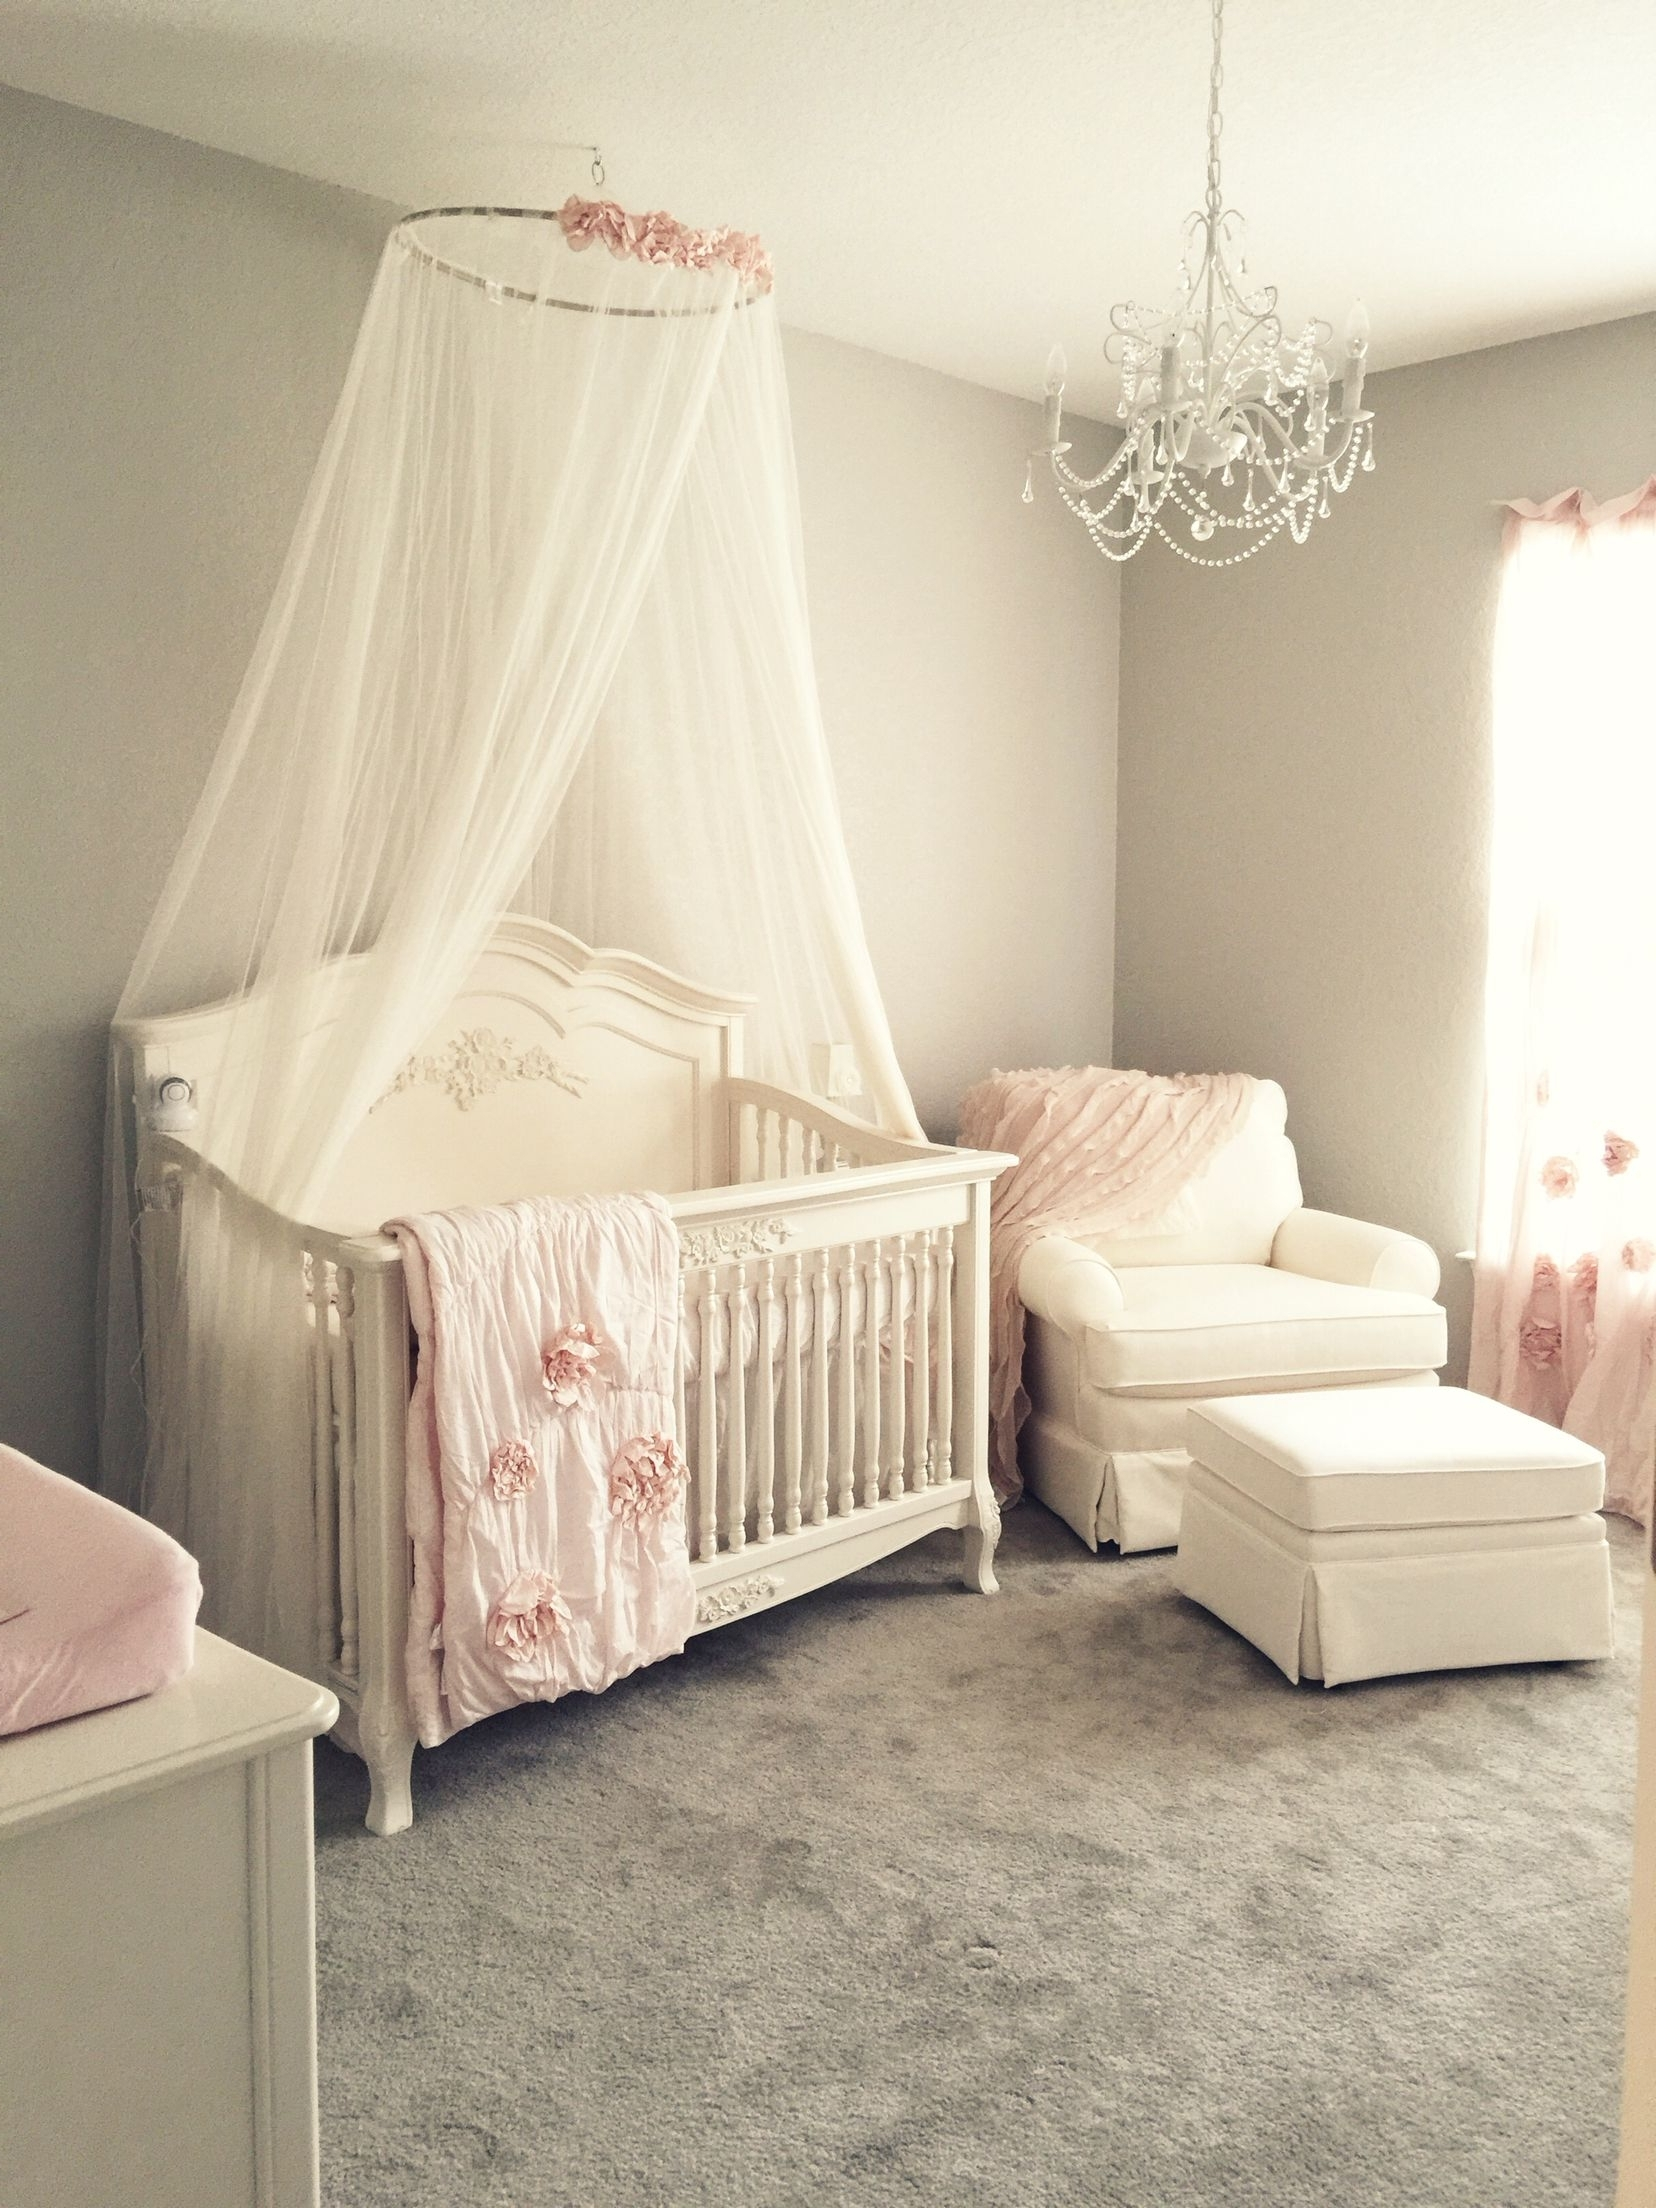 Chandeliers For Girl Nursery Regarding Recent Girly Pink Blush Nursery With Chandelier, Ivory Rocker And Glider (View 18 of 20)